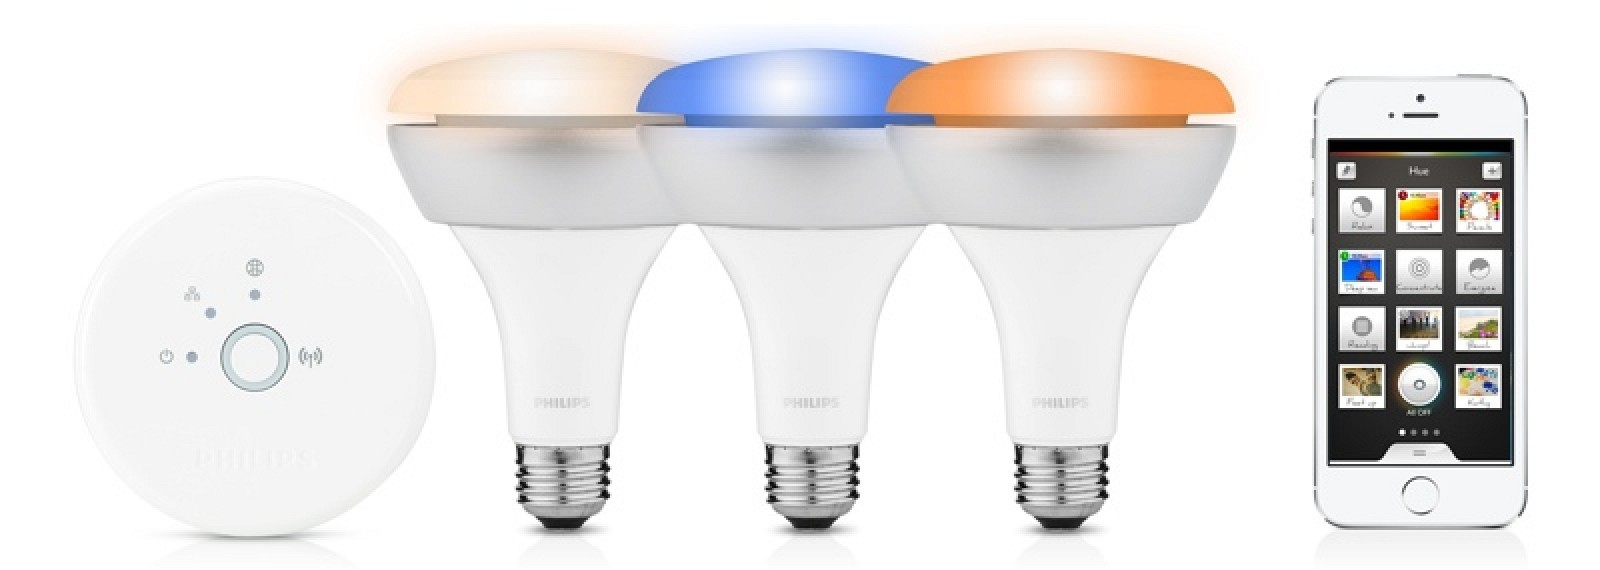 philips expands hue lineup with br30 recessed lights mac rumors. Black Bedroom Furniture Sets. Home Design Ideas